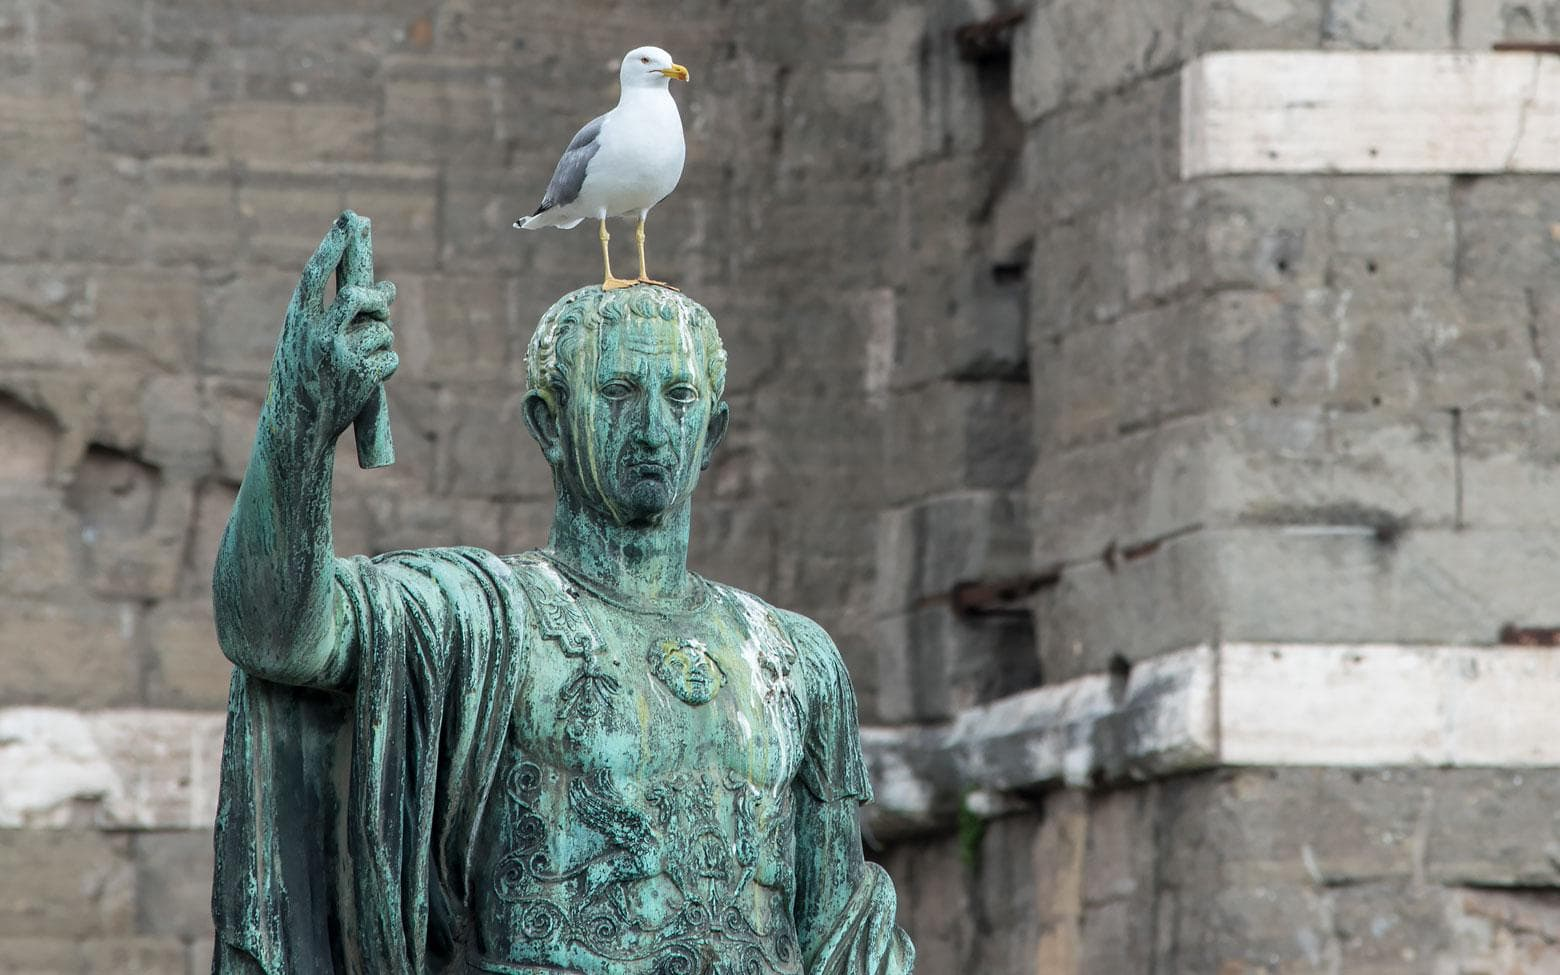 seagul on top of a statue in rome